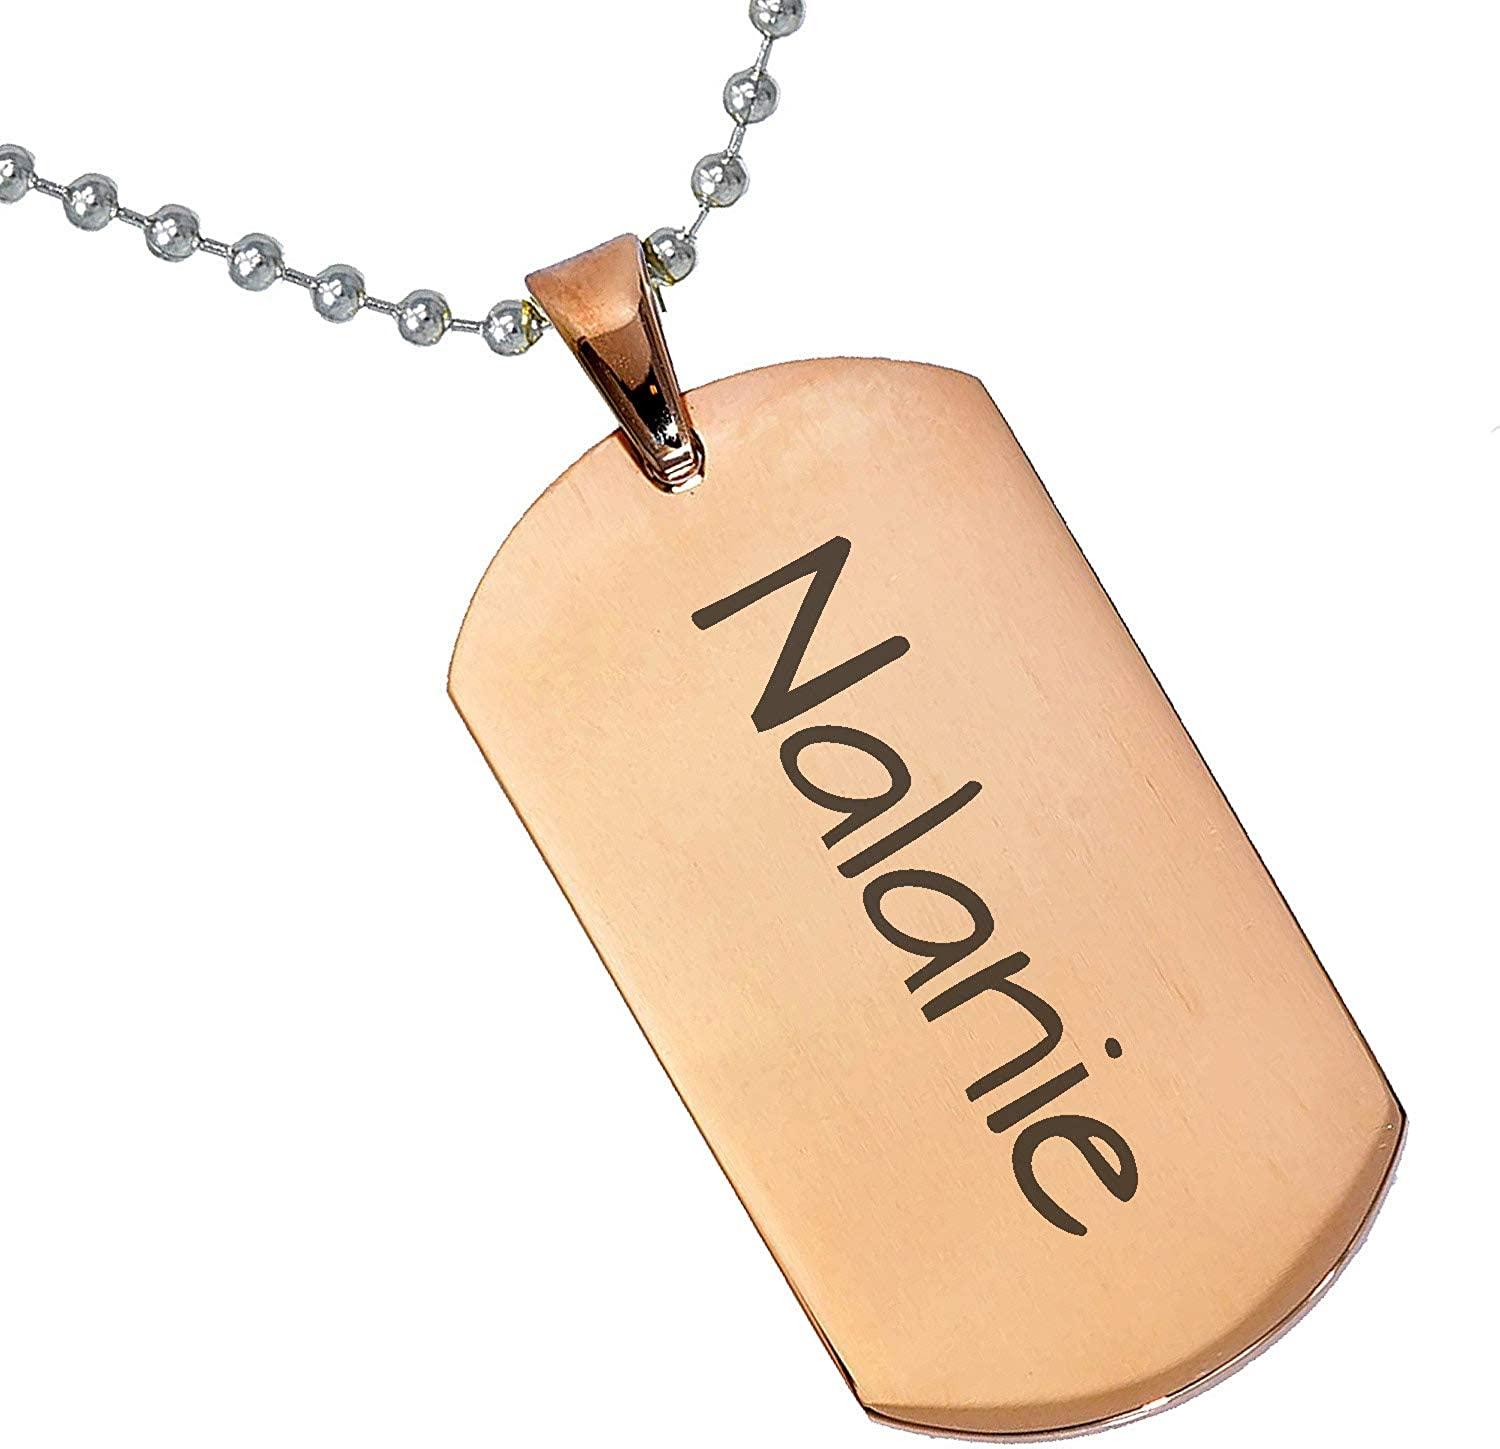 Stainless Steel Silver Gold Black Rose Gold Color Baby Name Nalanie Engraved Personalized Gifts For Son Daughter Boyfriend Girlfriend Initial Customizable Pendant Necklace Dog Tags 24 Ball Chain